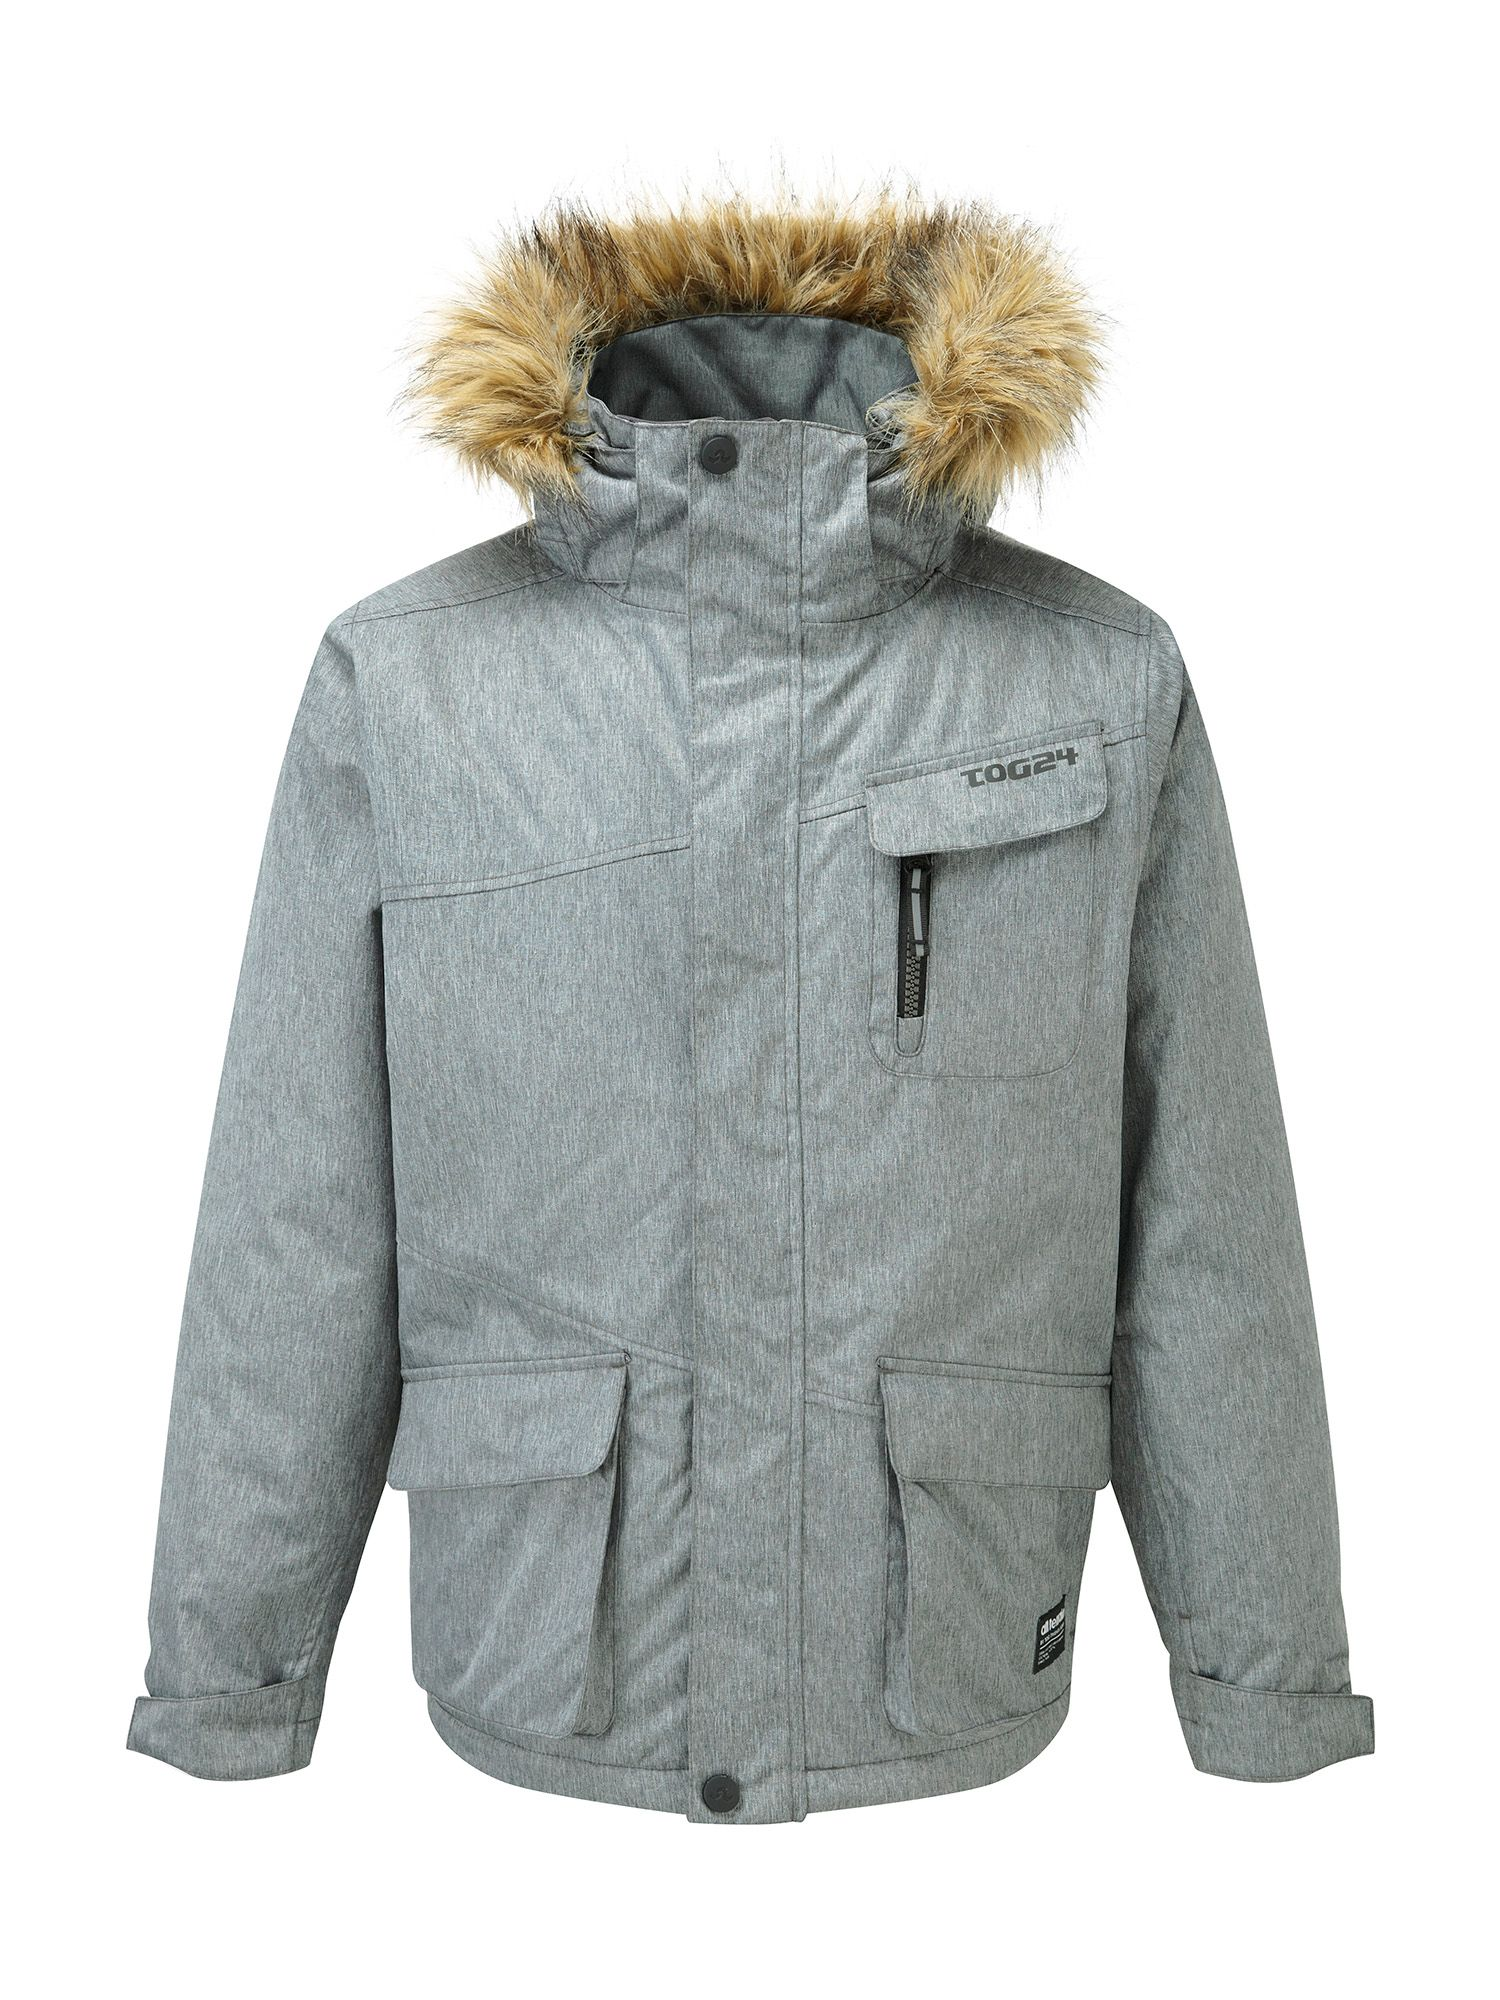 Photo of Tog 24 journey kids milatex parka jacket- grey marl